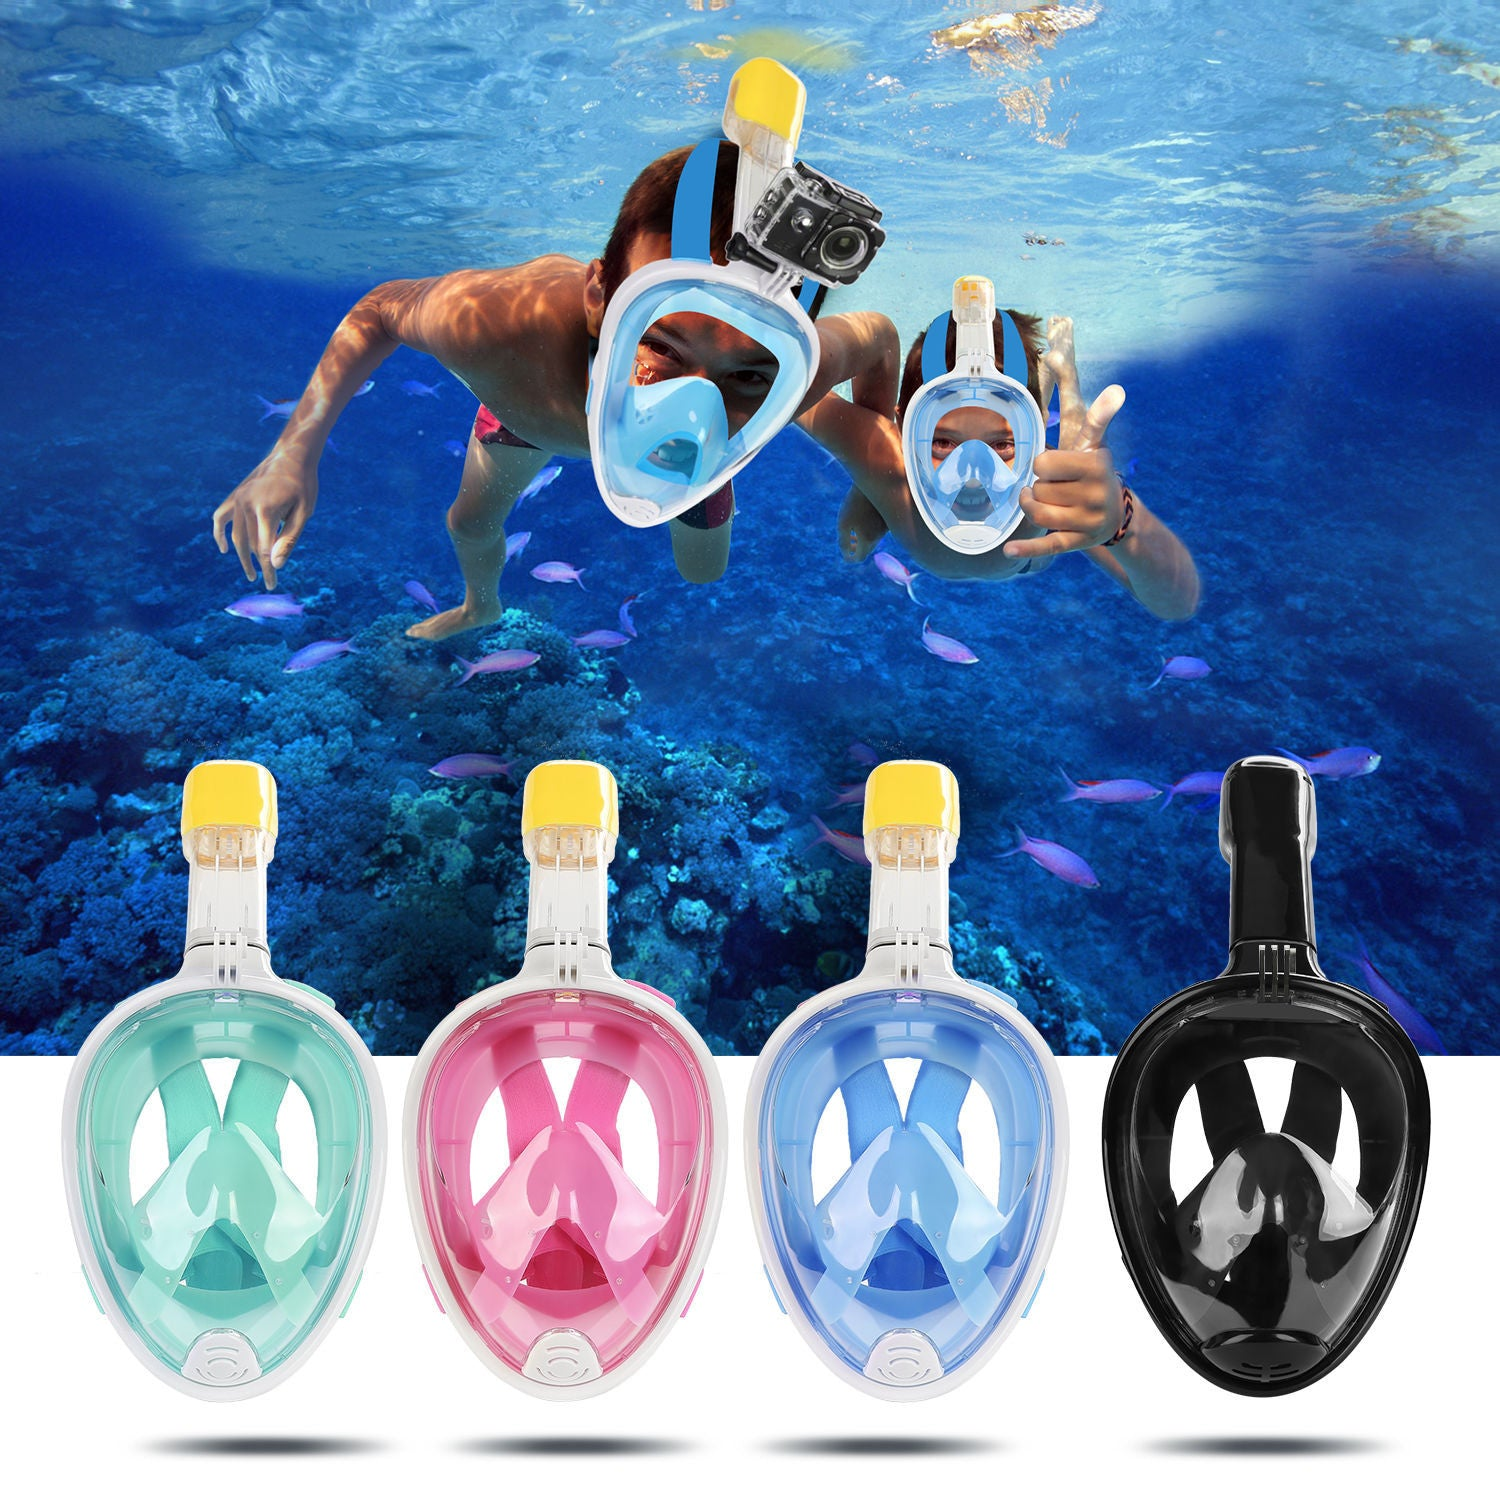 4ccc883972d4 H20 180° Full Face Snorkel Mask With GoPro Mount - The Gadget Mole